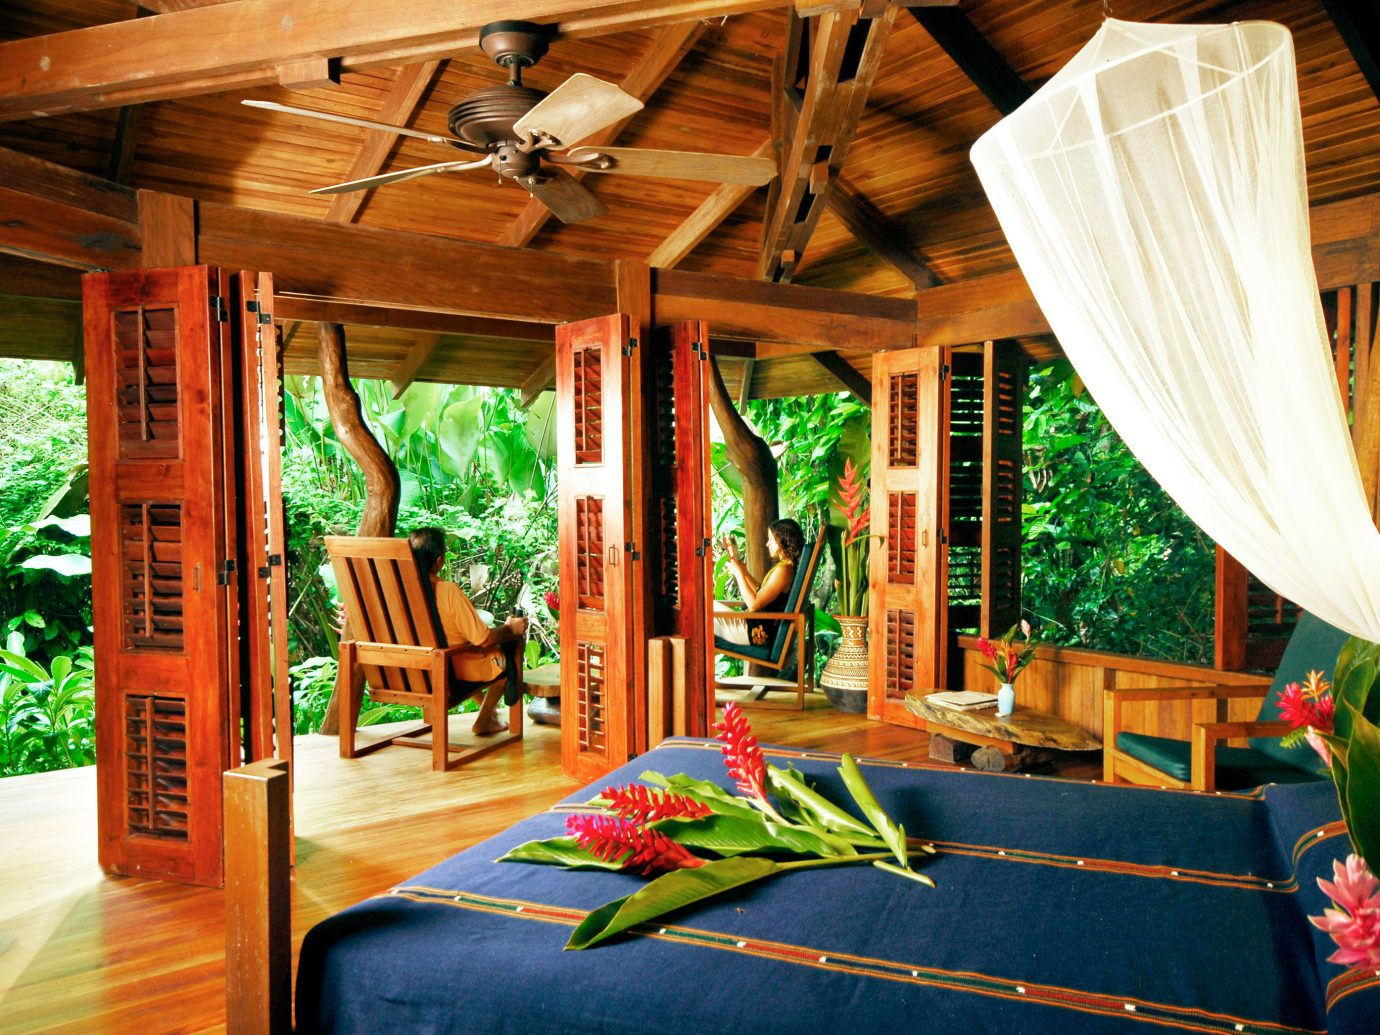 Adventure All-inclusive Balcony Bedroom Budget Eco Honeymoon Jungle Outdoor Activities Outdoors Romantic Rustic Scenic views Suite indoor leisure room Resort estate interior design decorated furniture